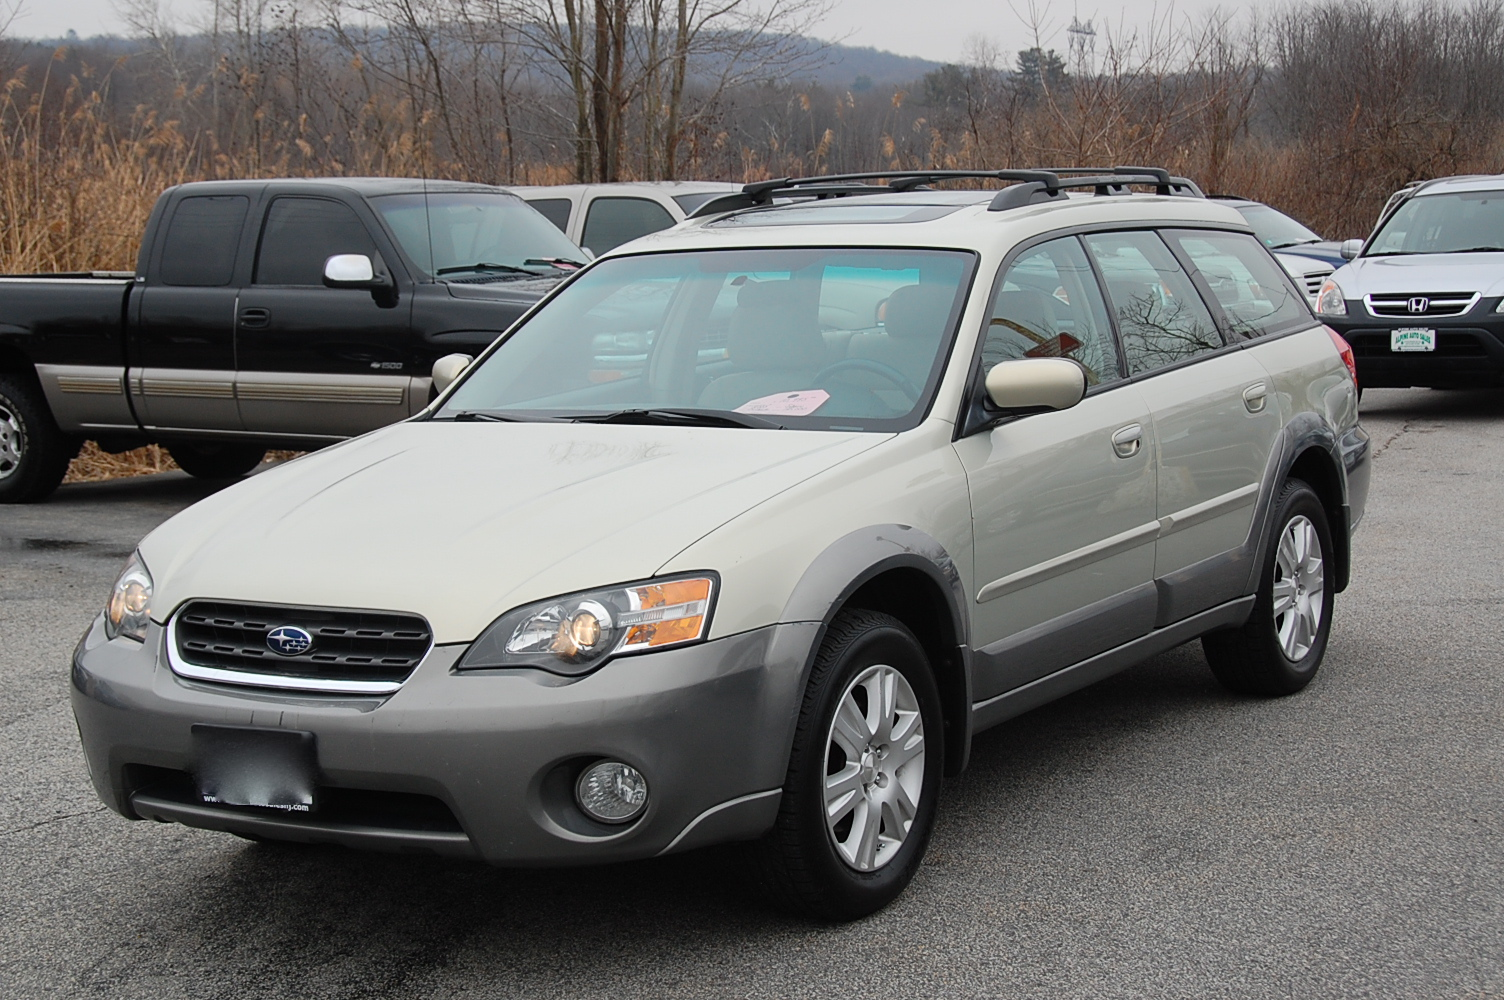 2005 subaru outback limited wagon in nj subaru outback subaru click image for larger version name dsc0904g views 9820 size 7030 vanachro Images